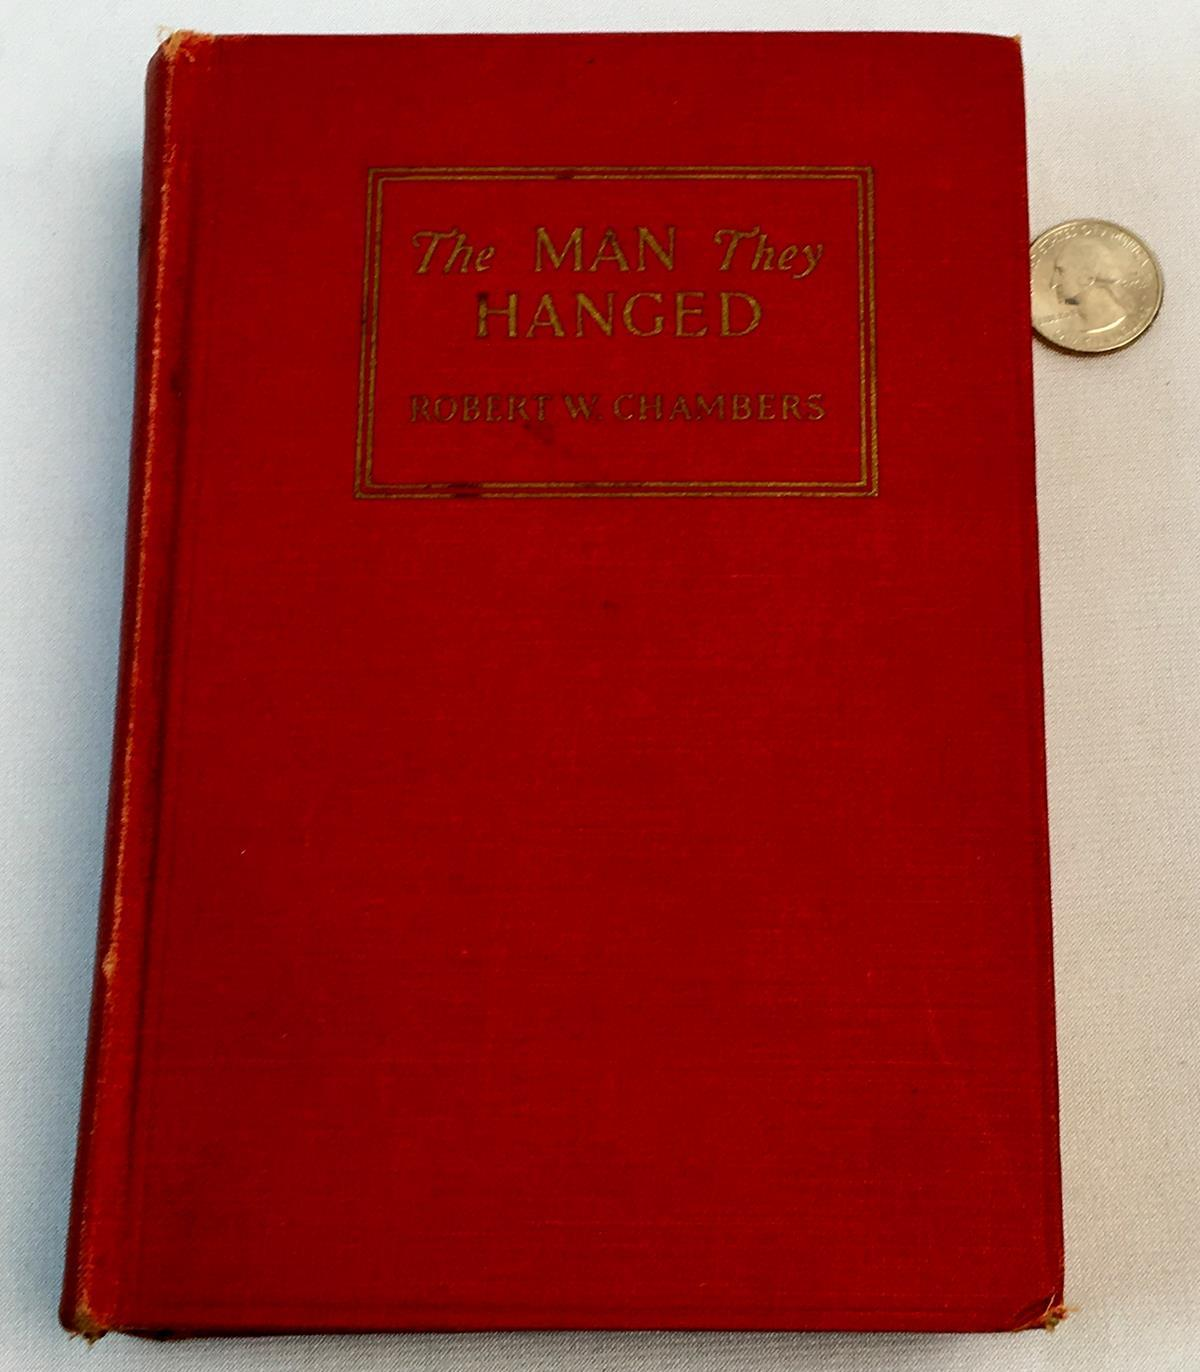 1926 The Man They Hanged by Robert W. Chambers FIRST EDITION